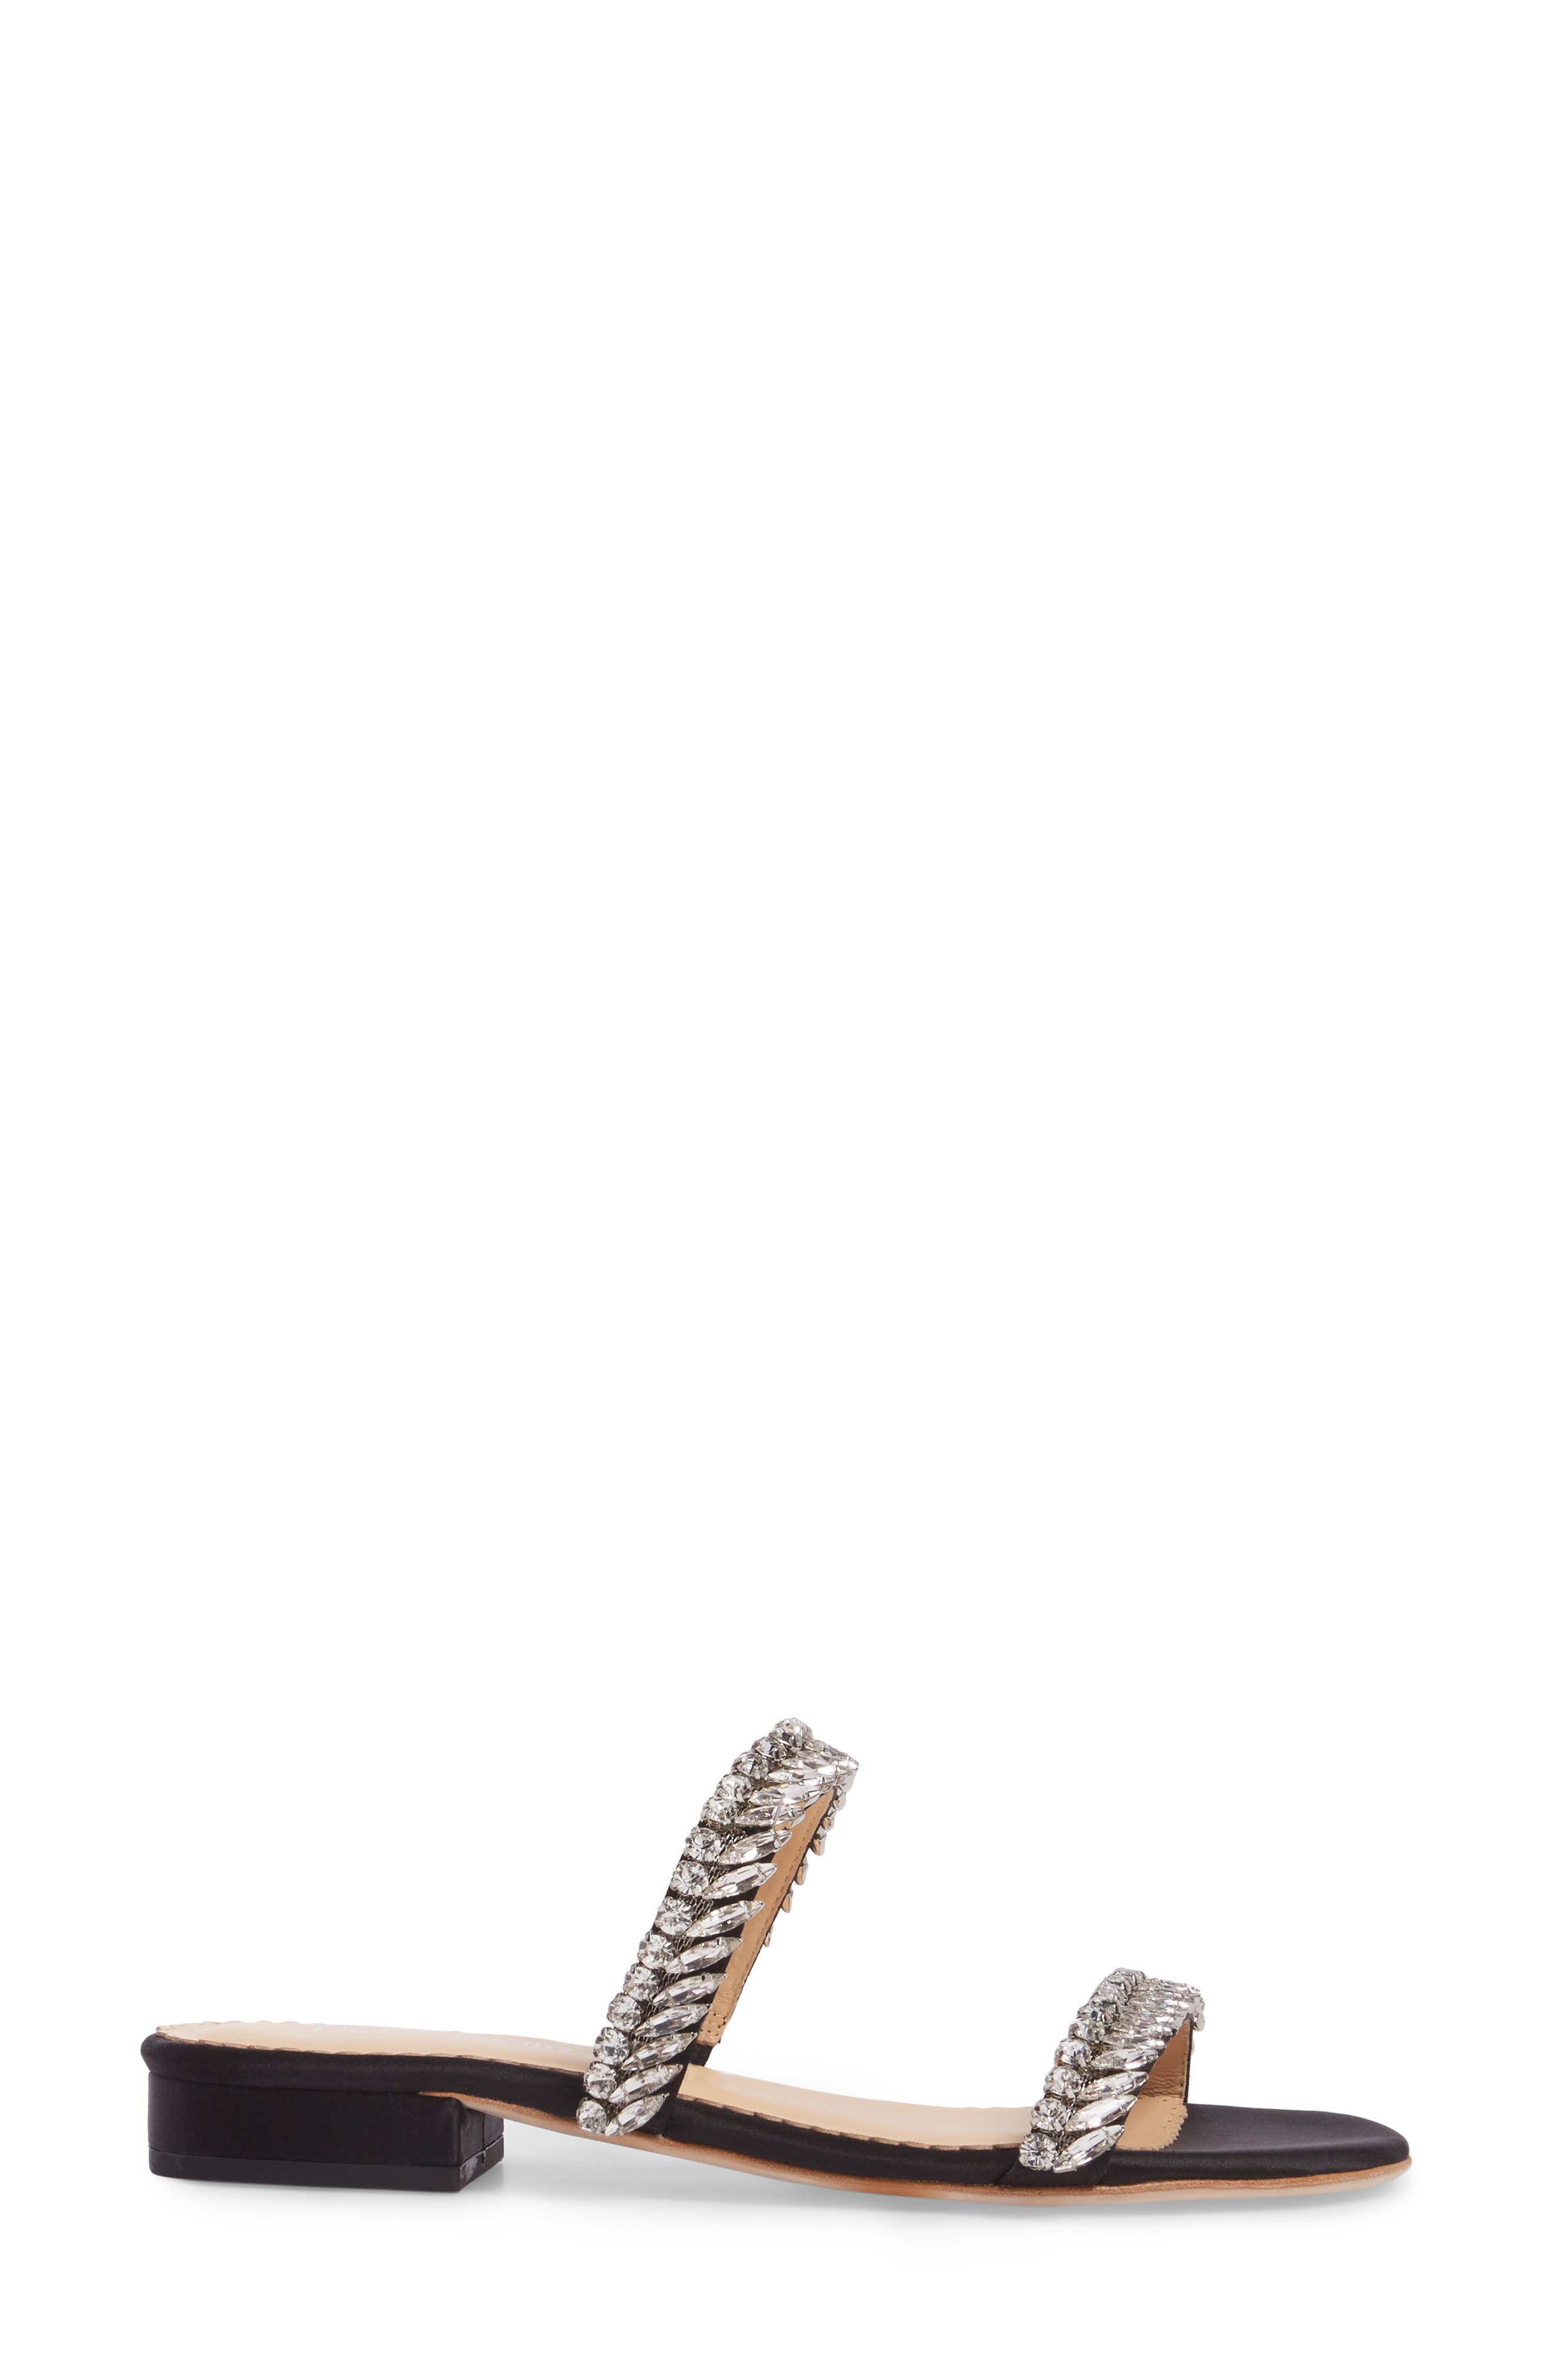 Bree Jeweled Evening Sandal,                             Alternate thumbnail 3, color,                             Black